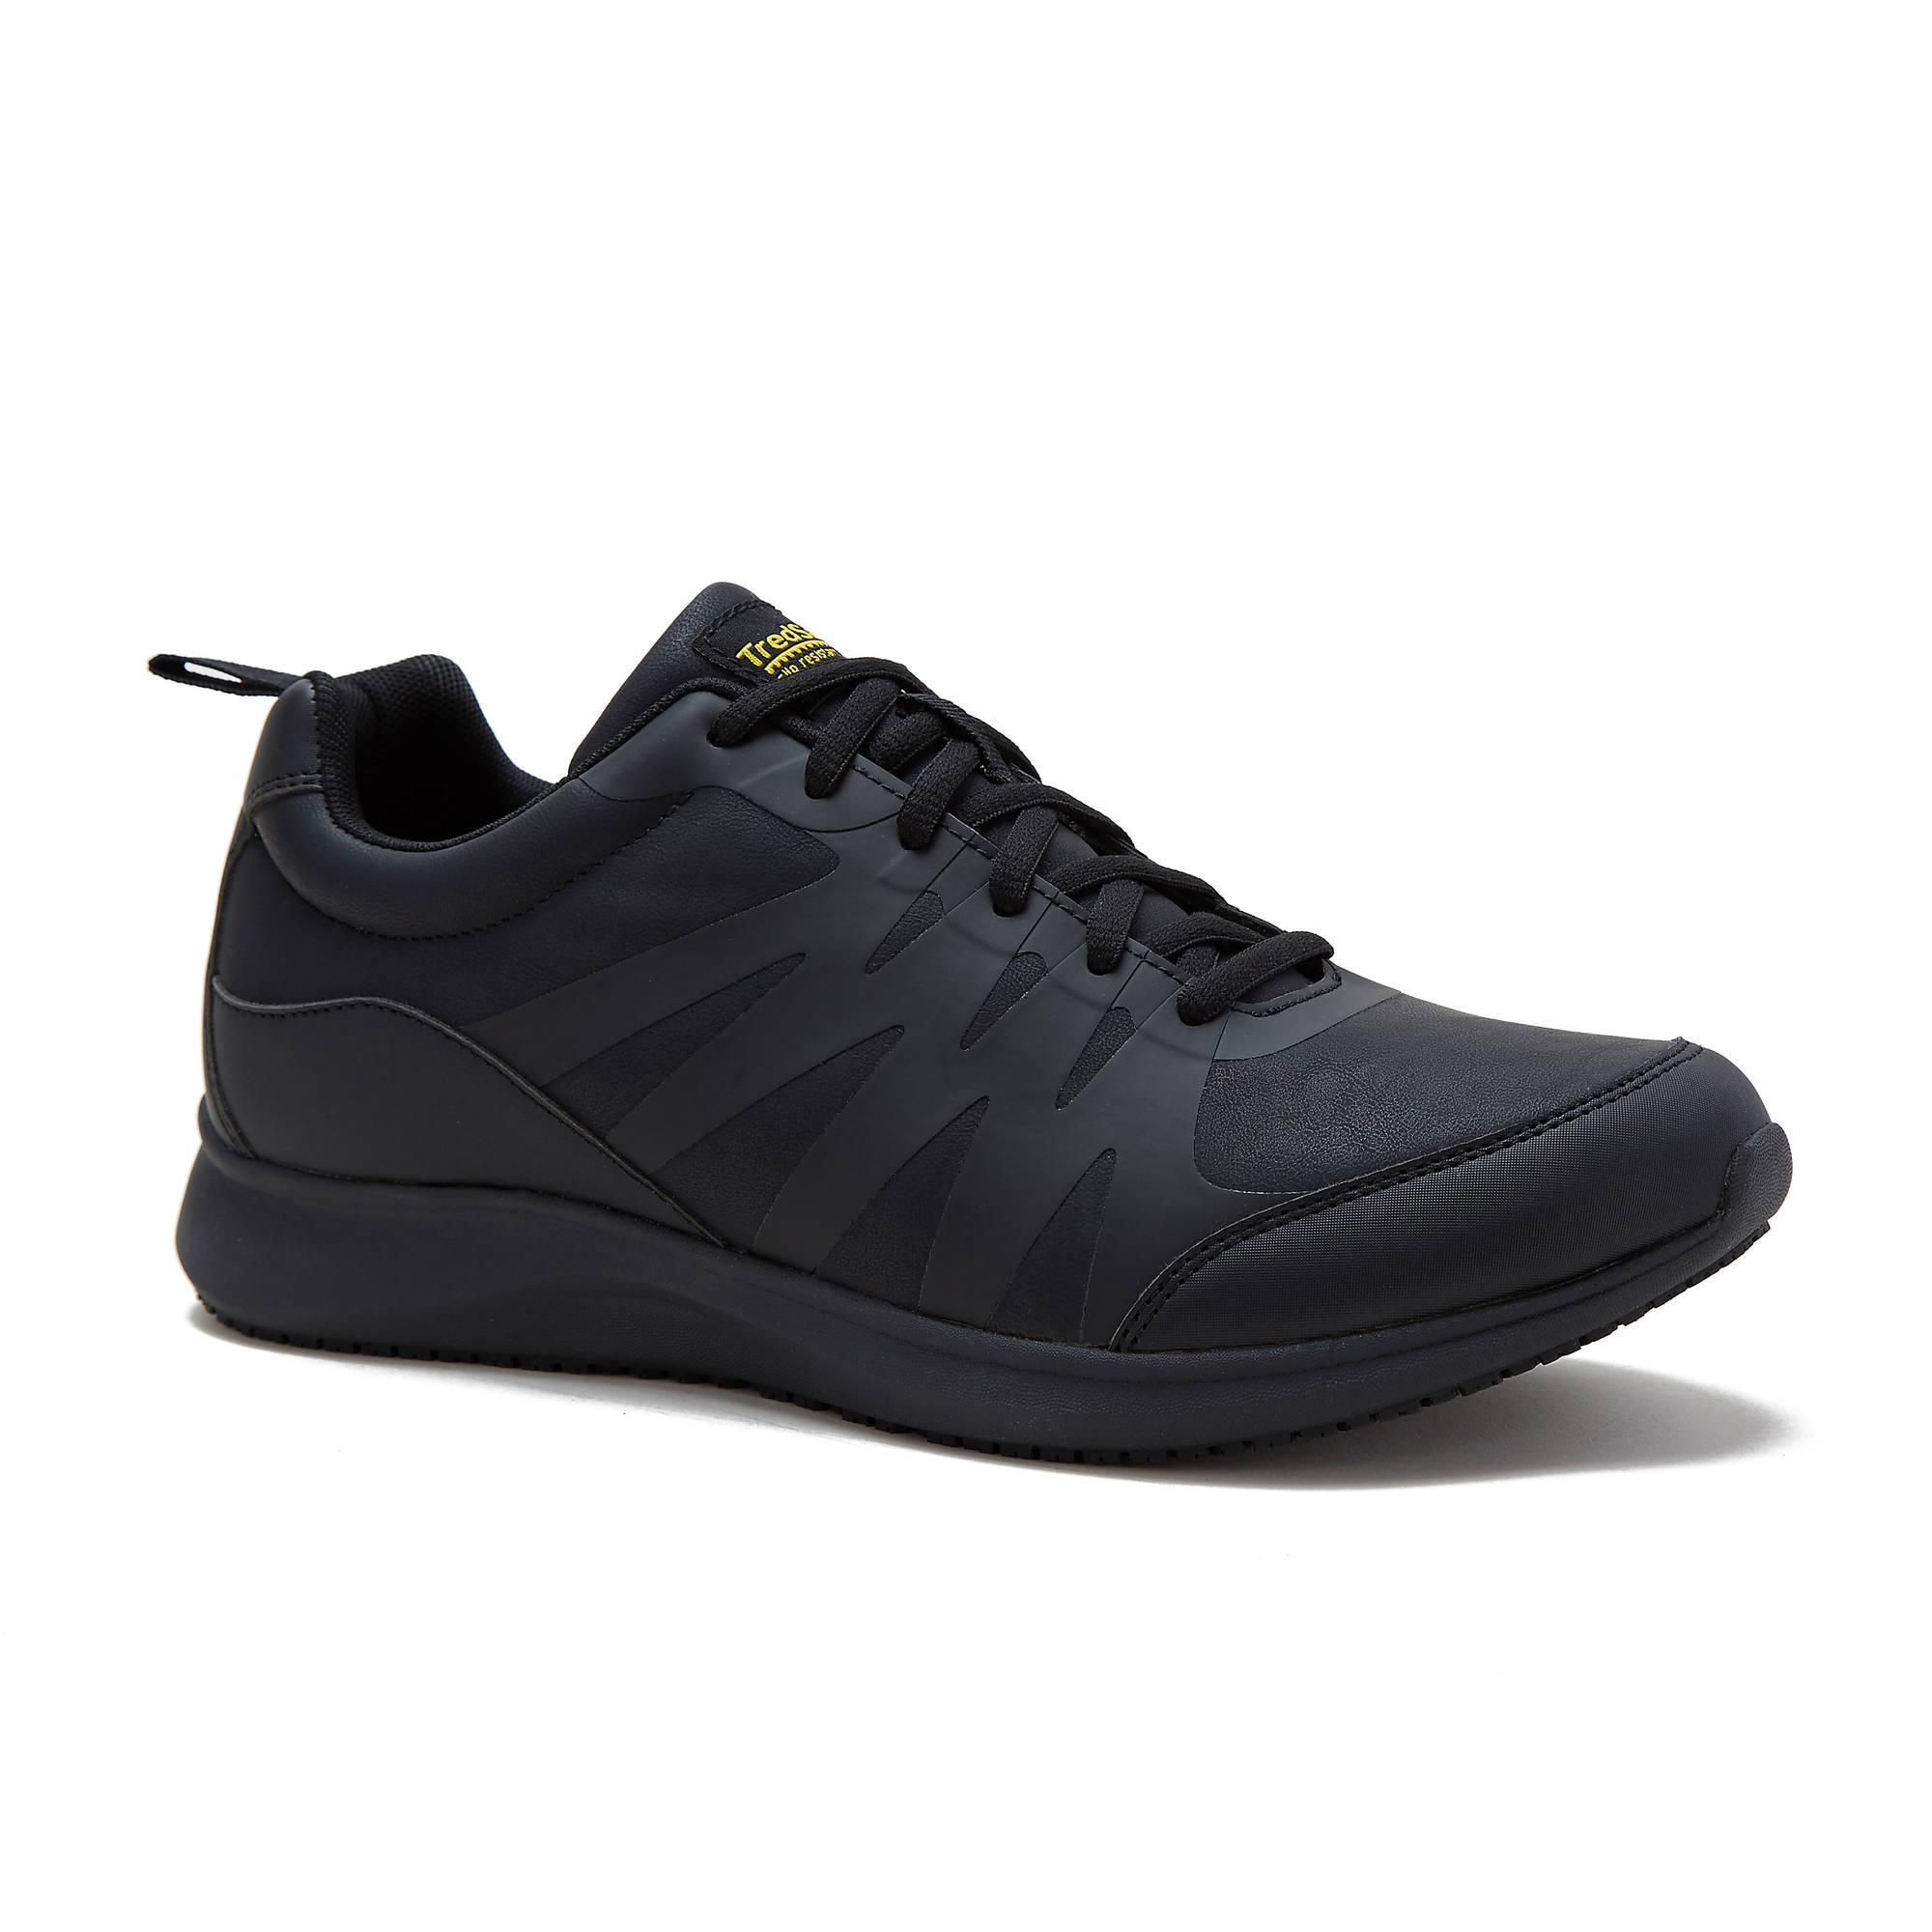 Where To Buy Slip Resistant Shoes